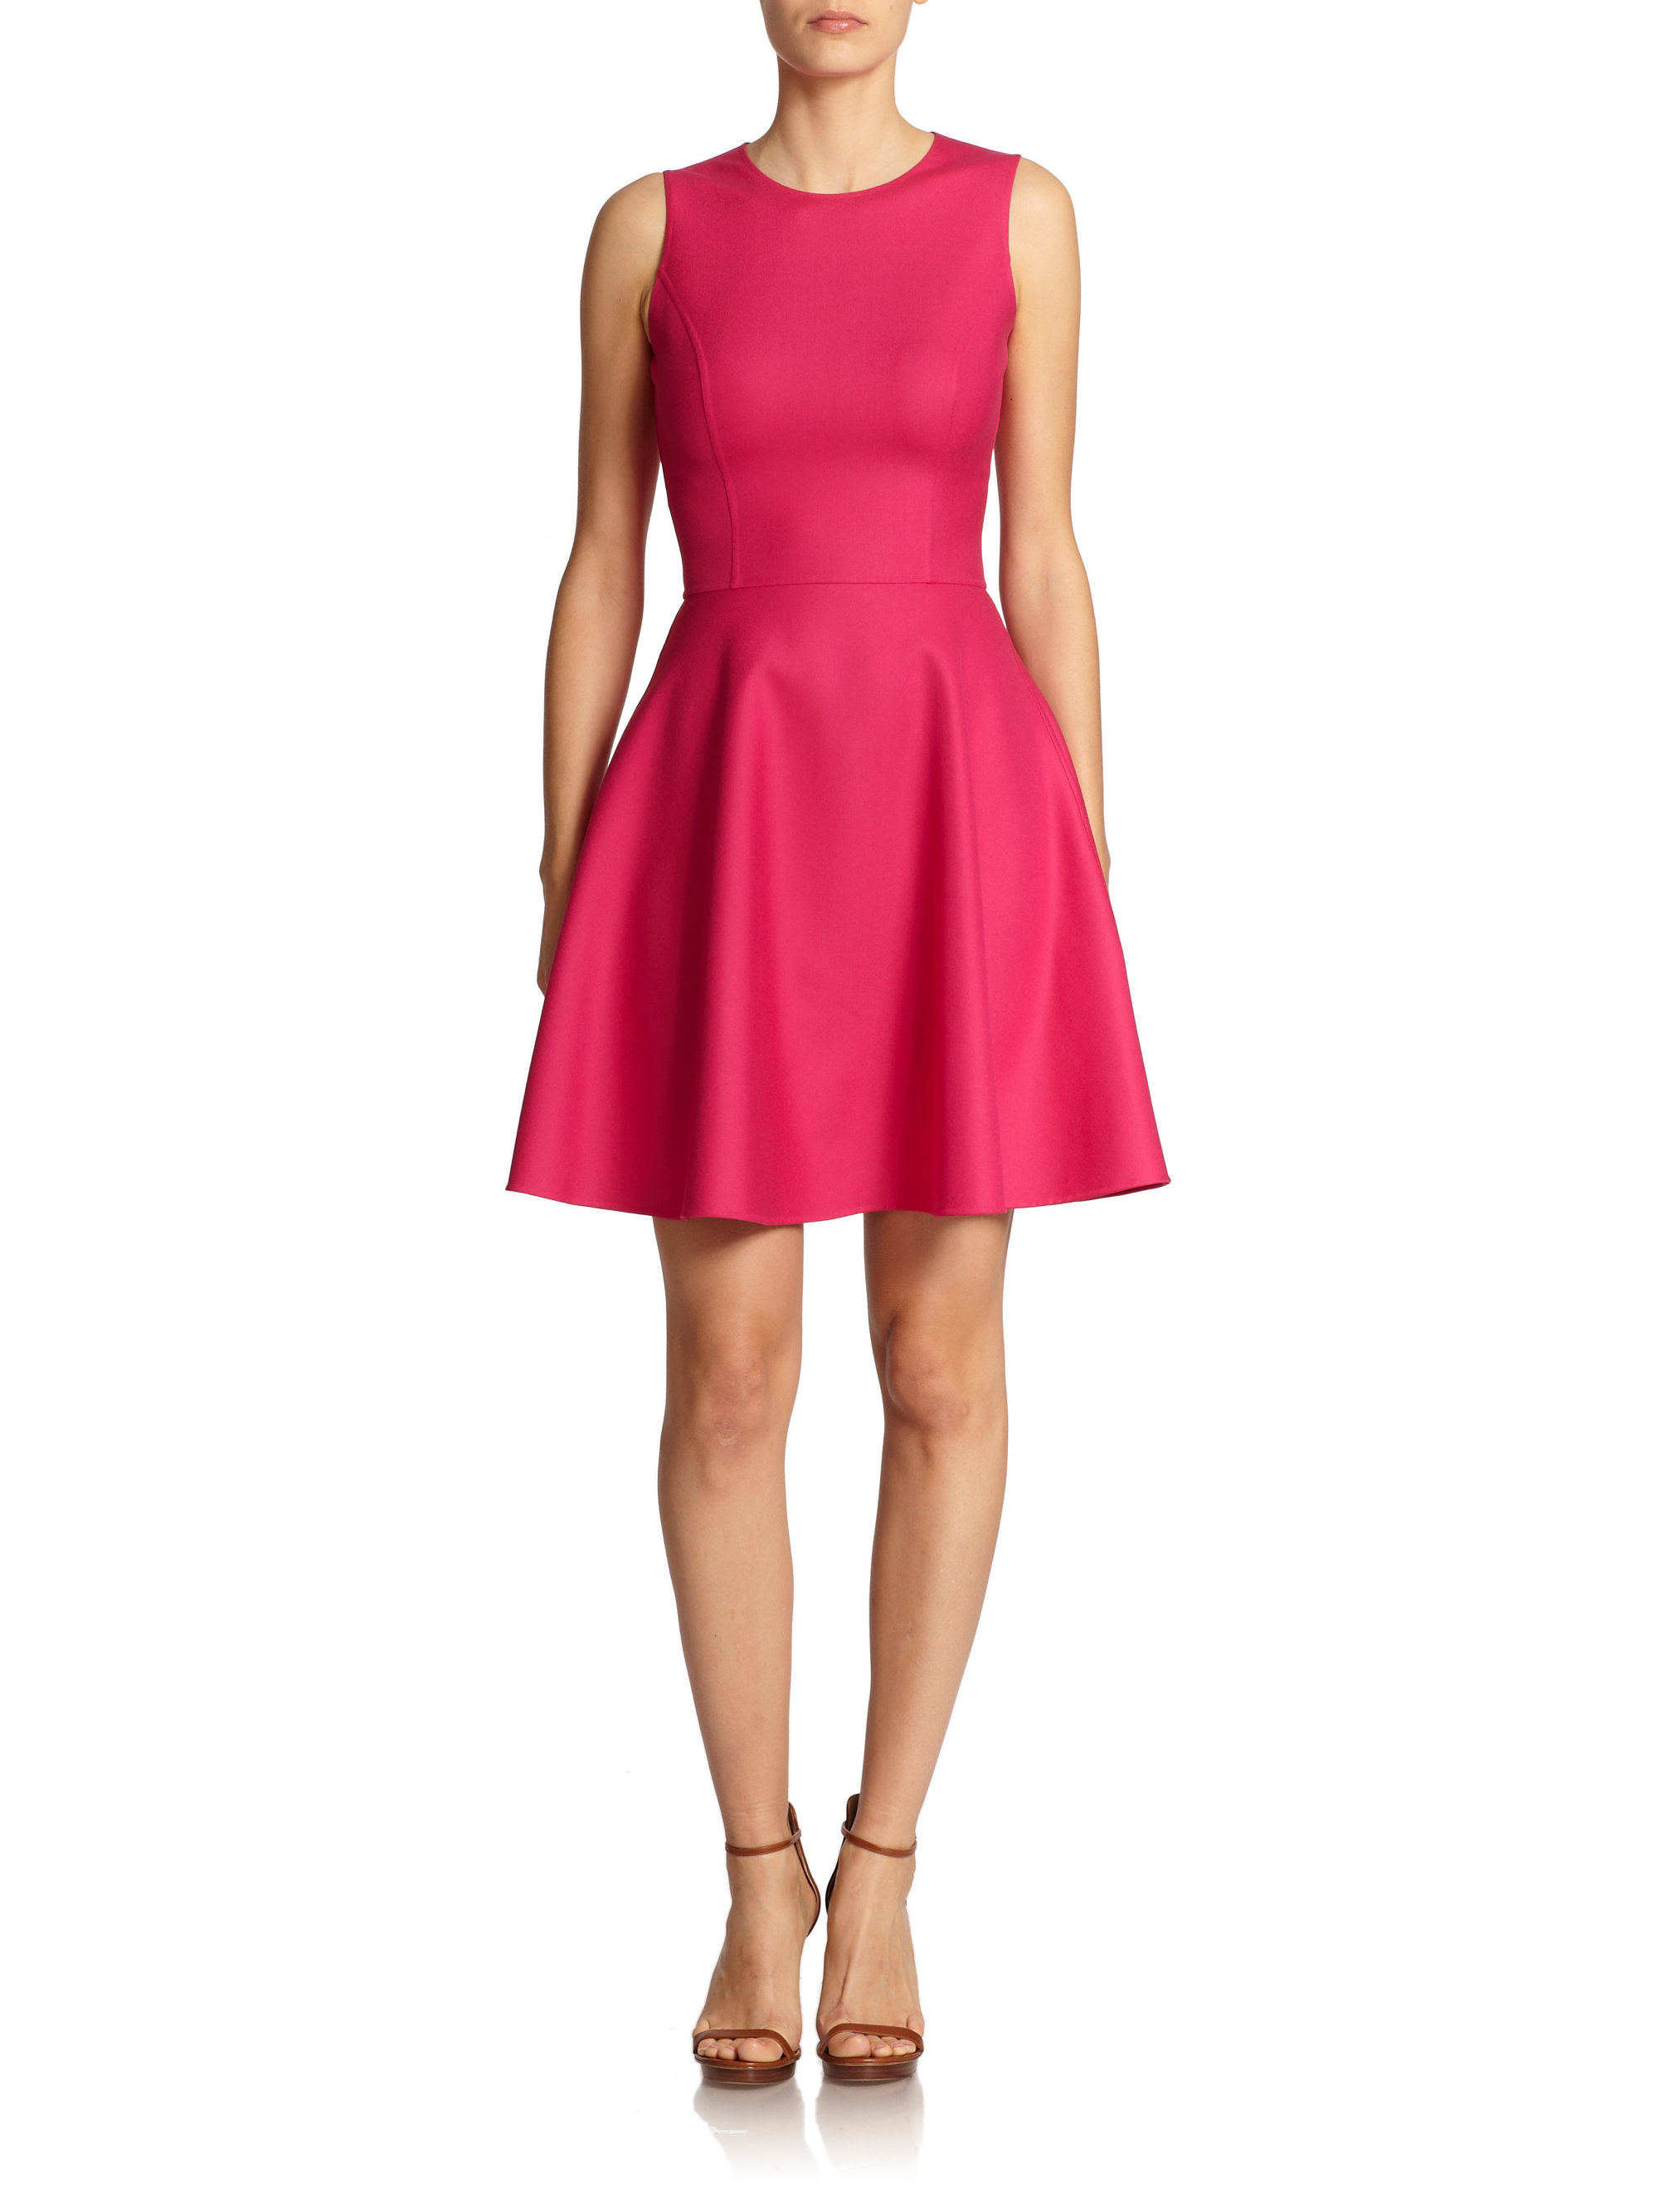 Lyst Michael Kors Silk Fit Amp Flare Dress In Pink